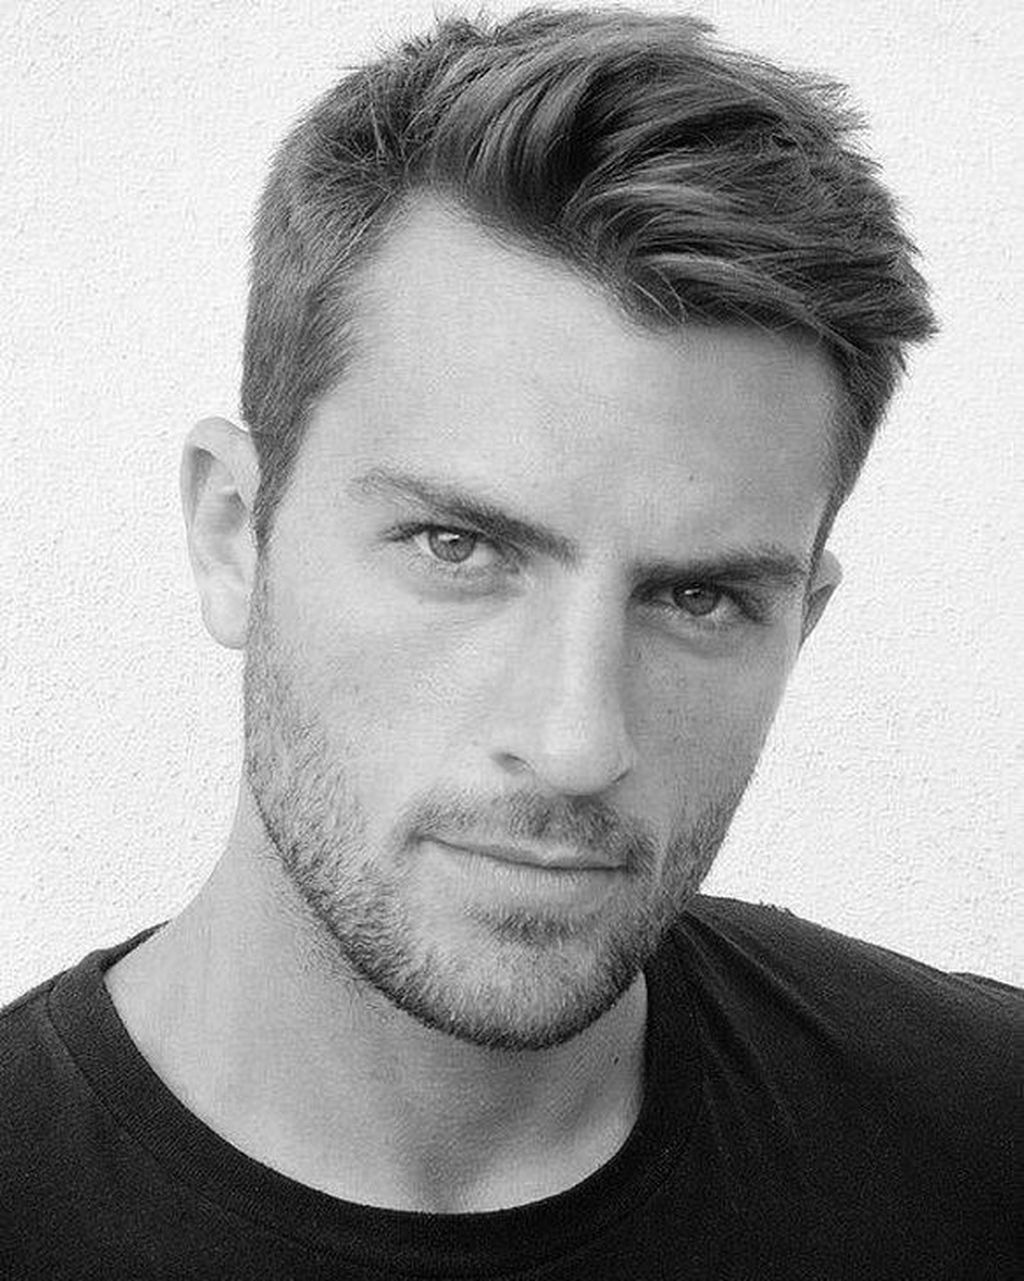 20 Lovely Hairstyles For Men With Thin Hair Mens Haircuts Short Mens Hairstyles Short Short Hair Lengths